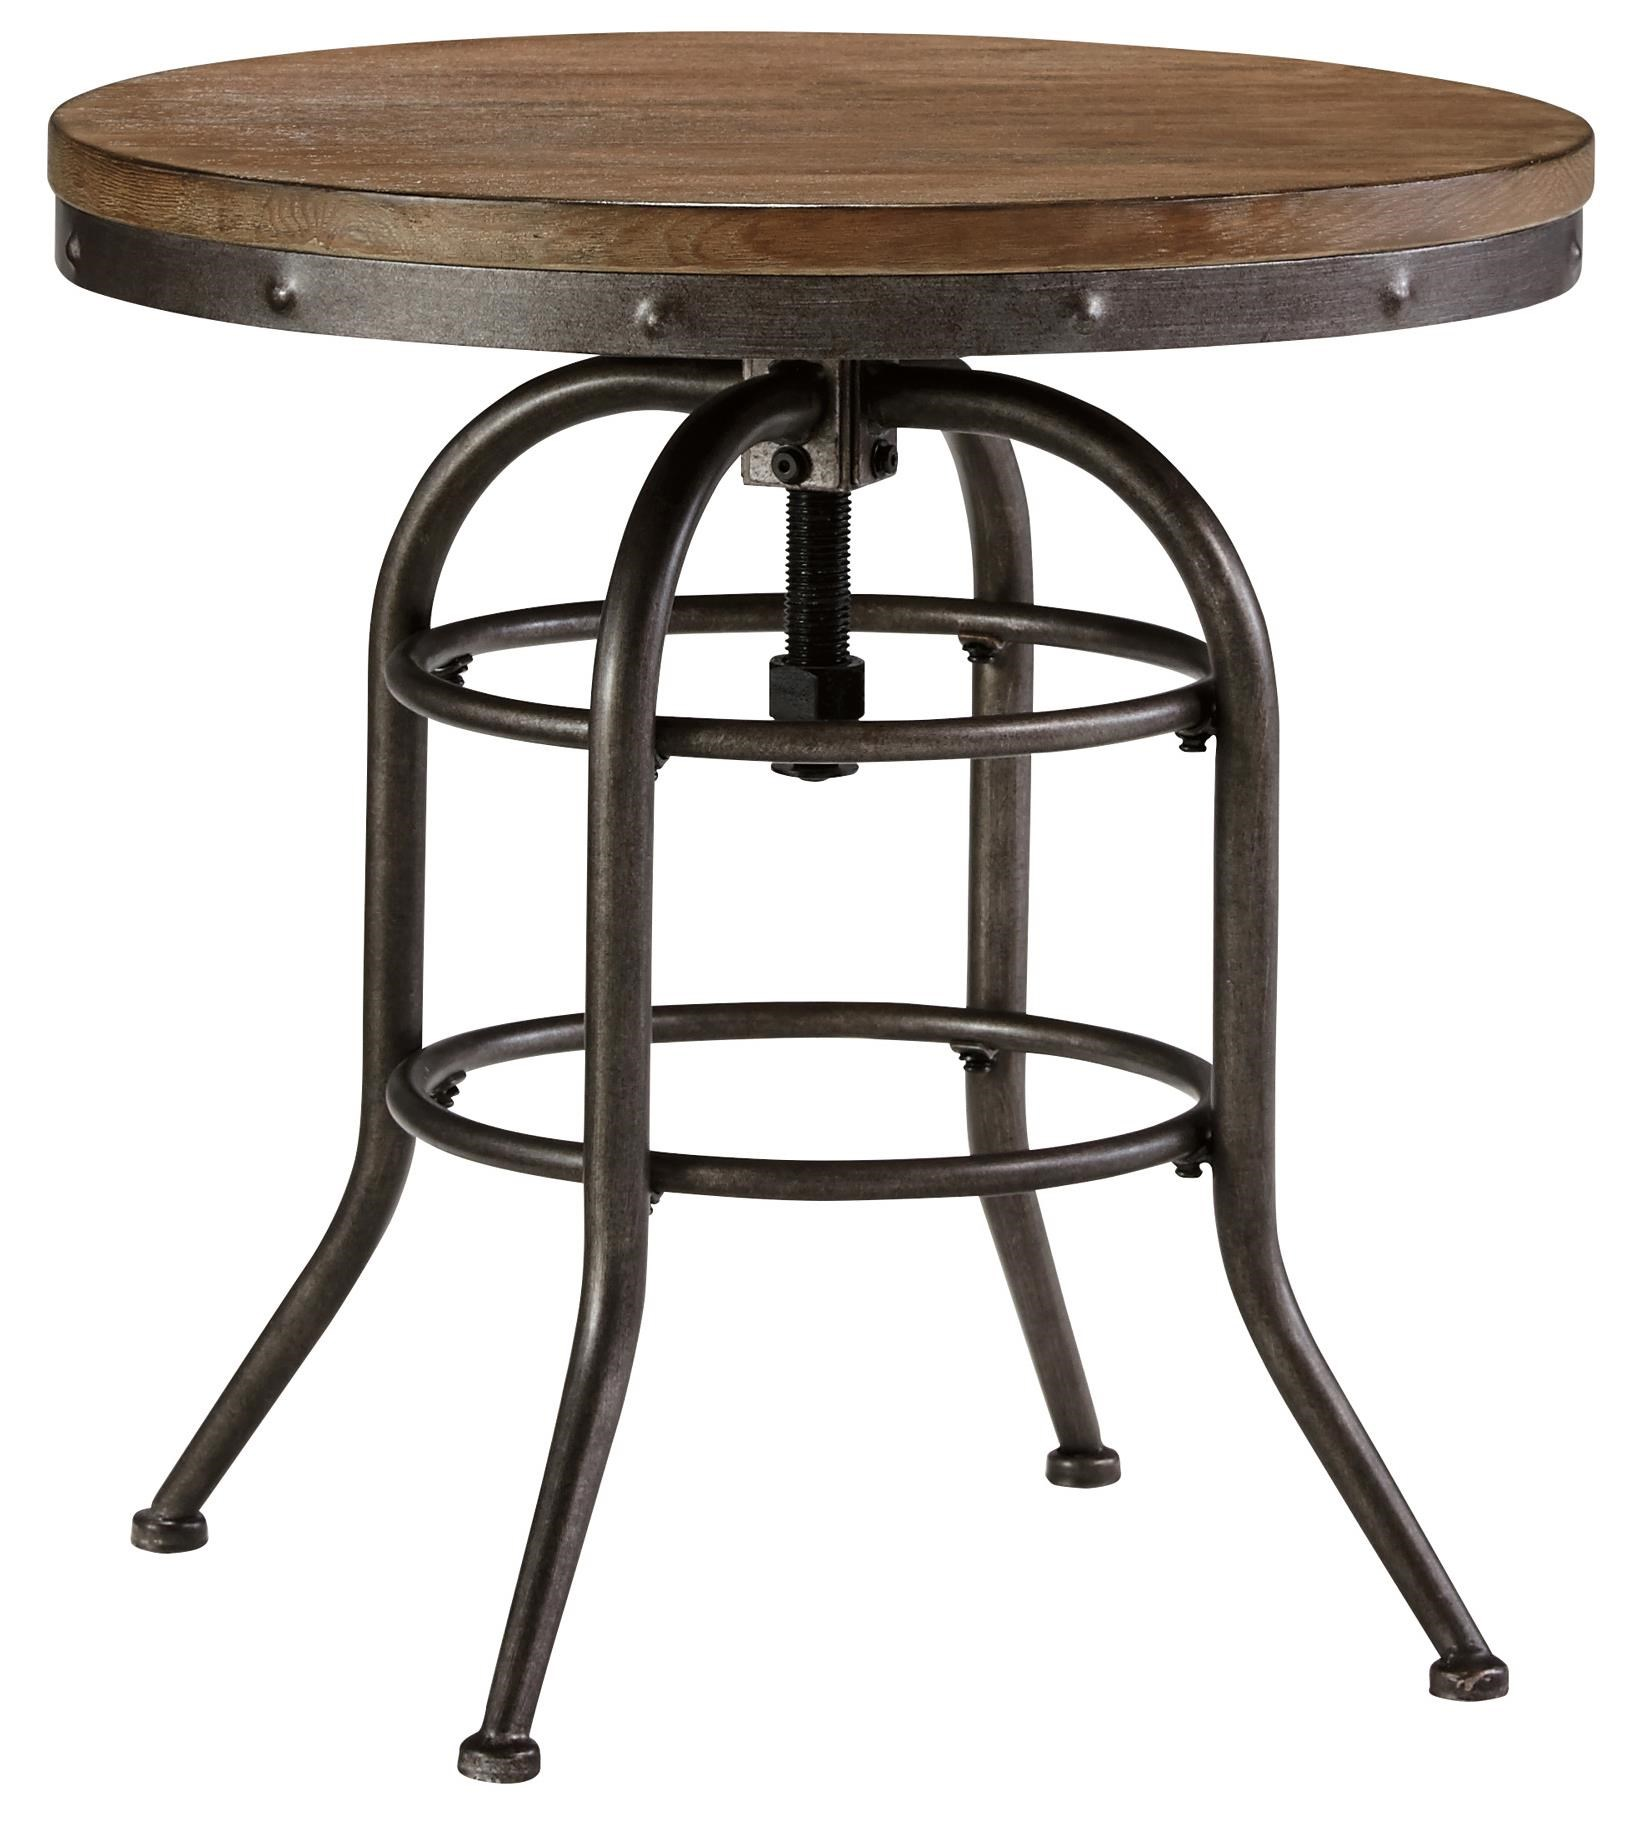 Signature Design By Ashley Vennilux Industrial Style Round End Table With  Adjustable Height